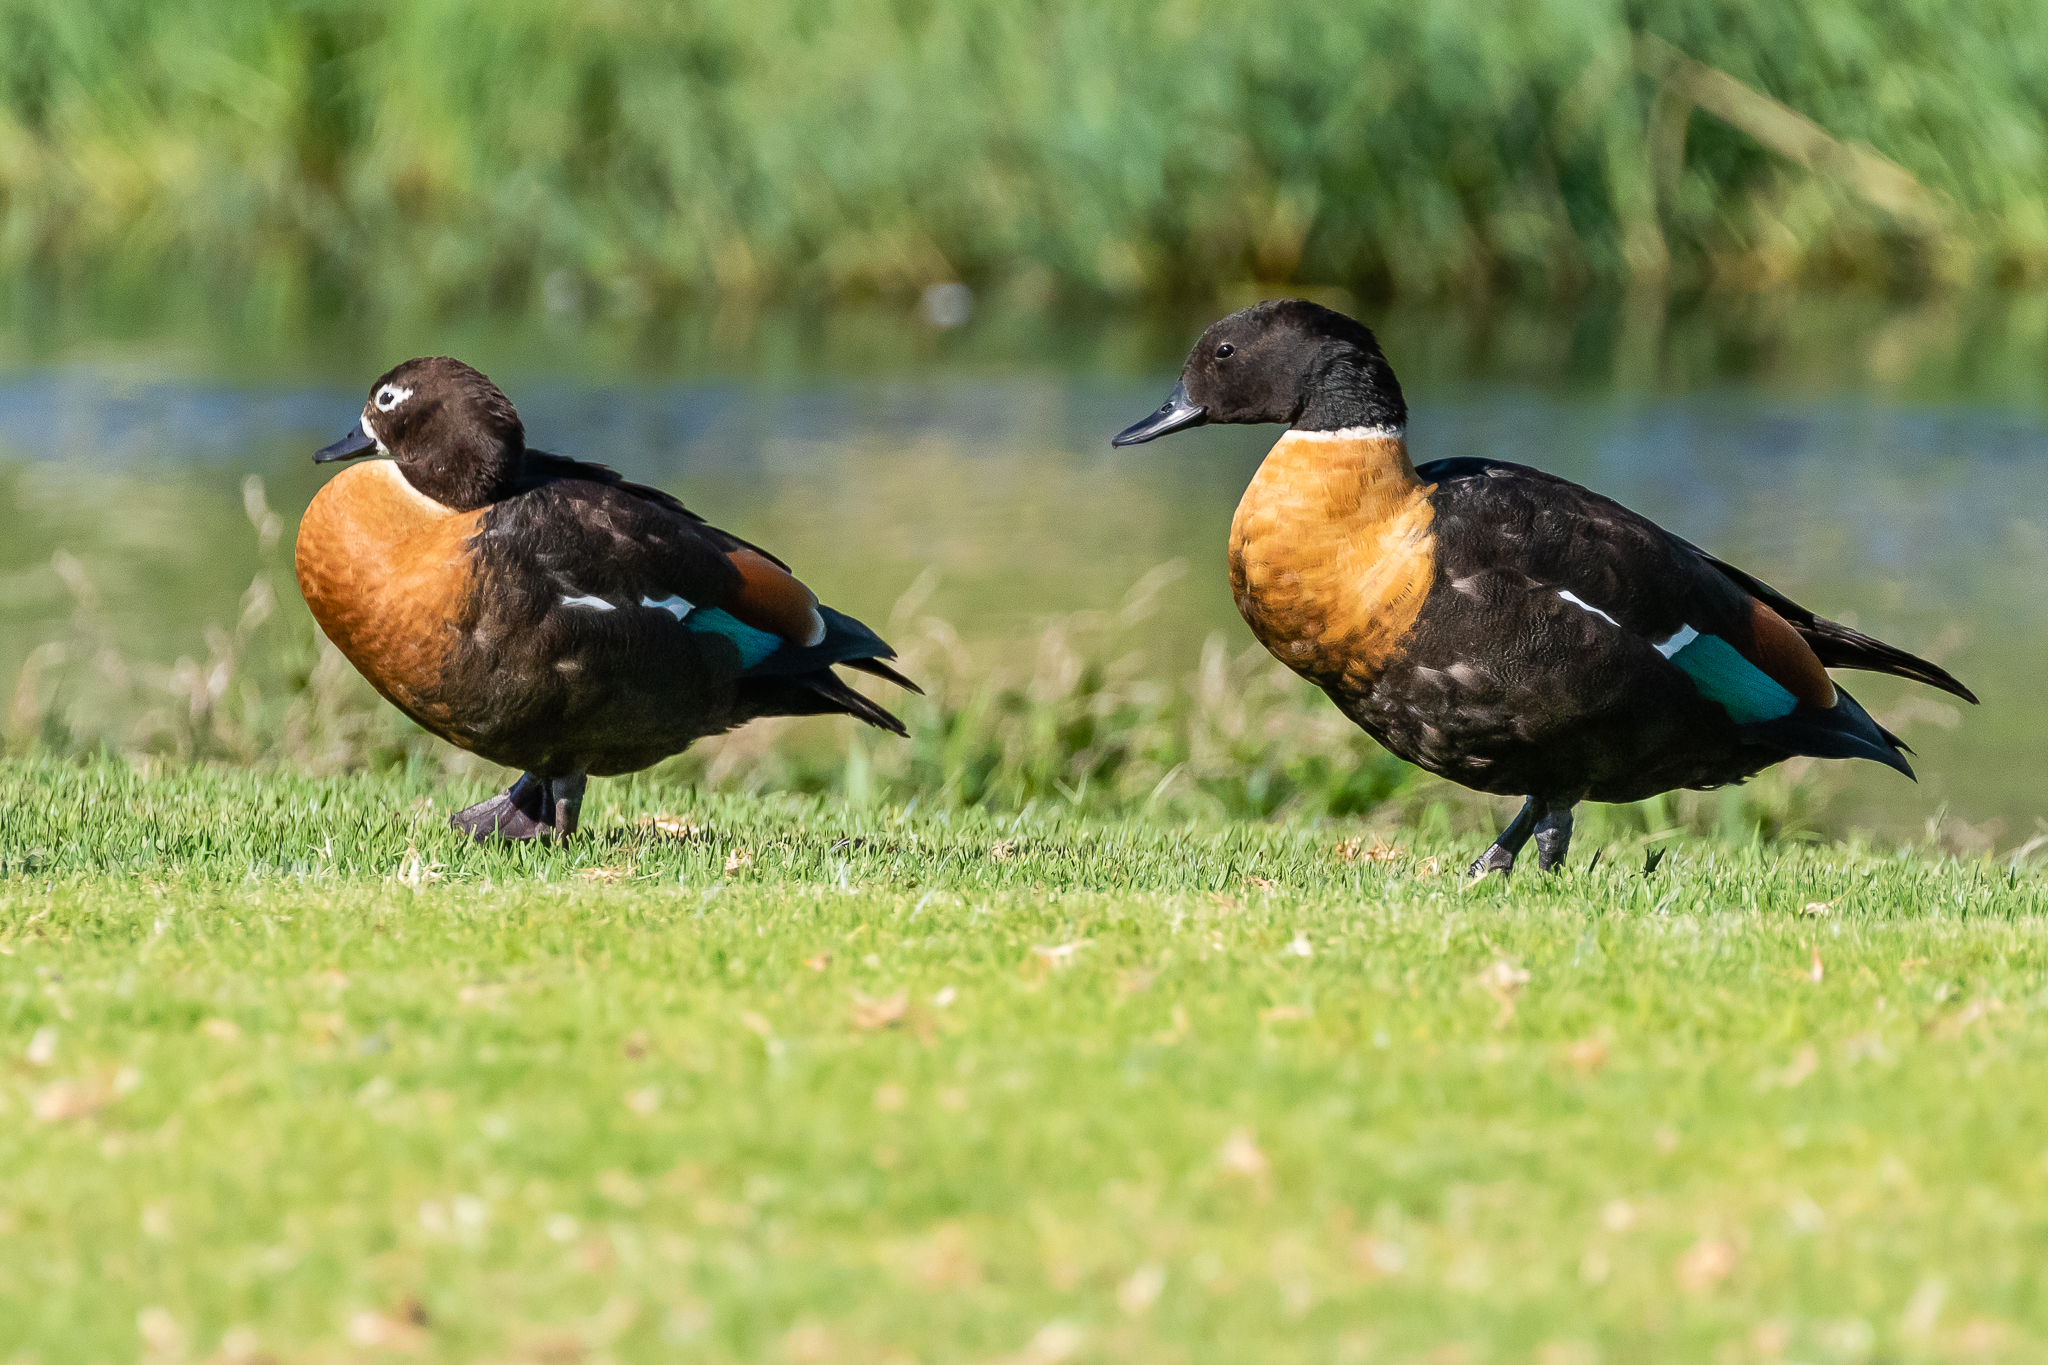 The Australian Shelduck (73 cm) feeds on pasture and wetlands across southern Australia. They eat grass and insects.